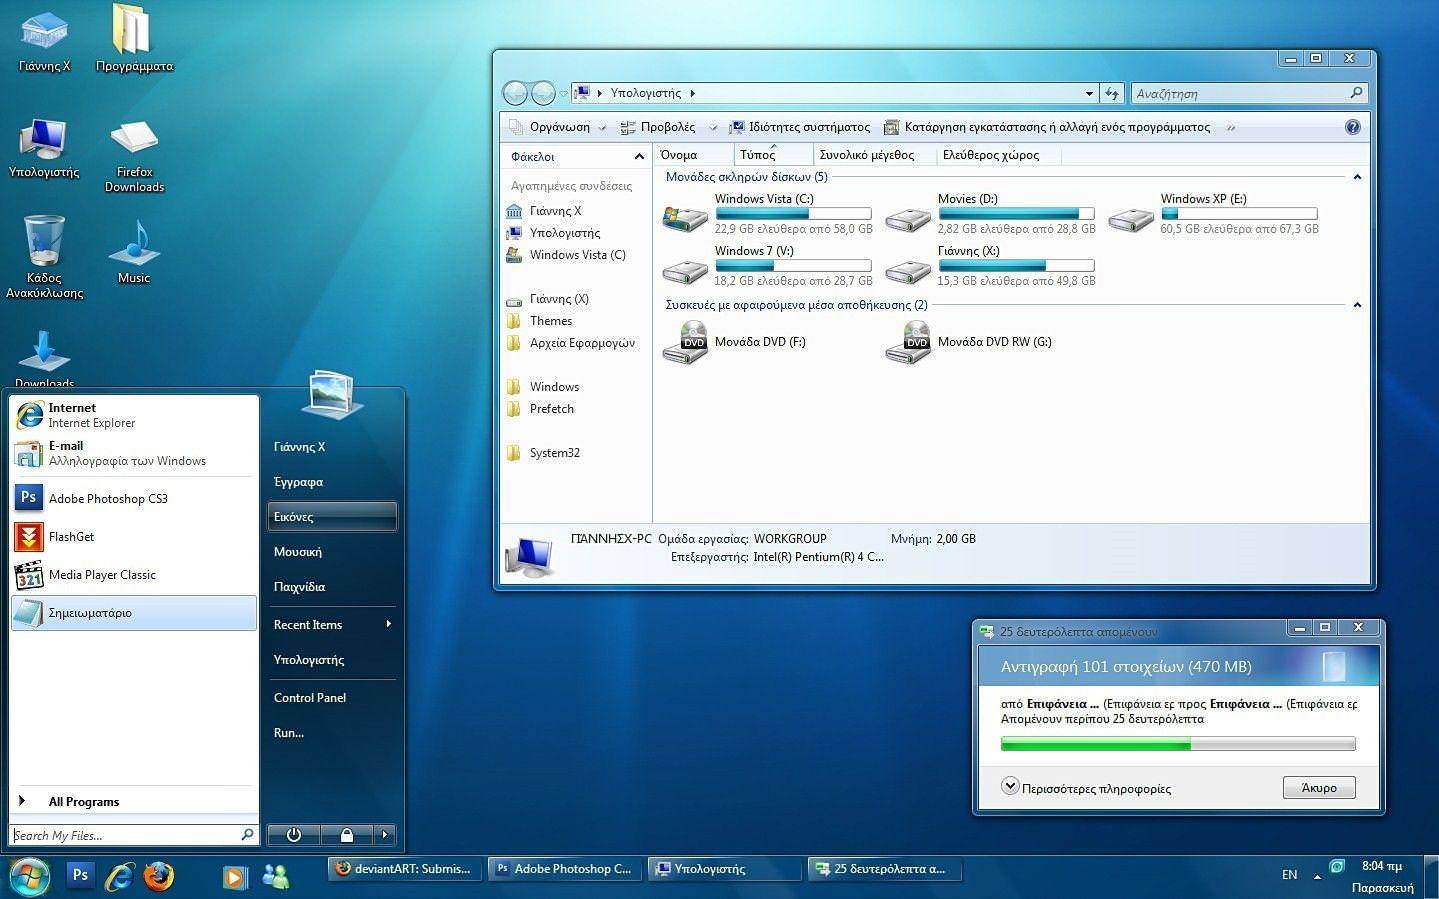 Download Windows 7 Enterprise 32-bit and 64-bit